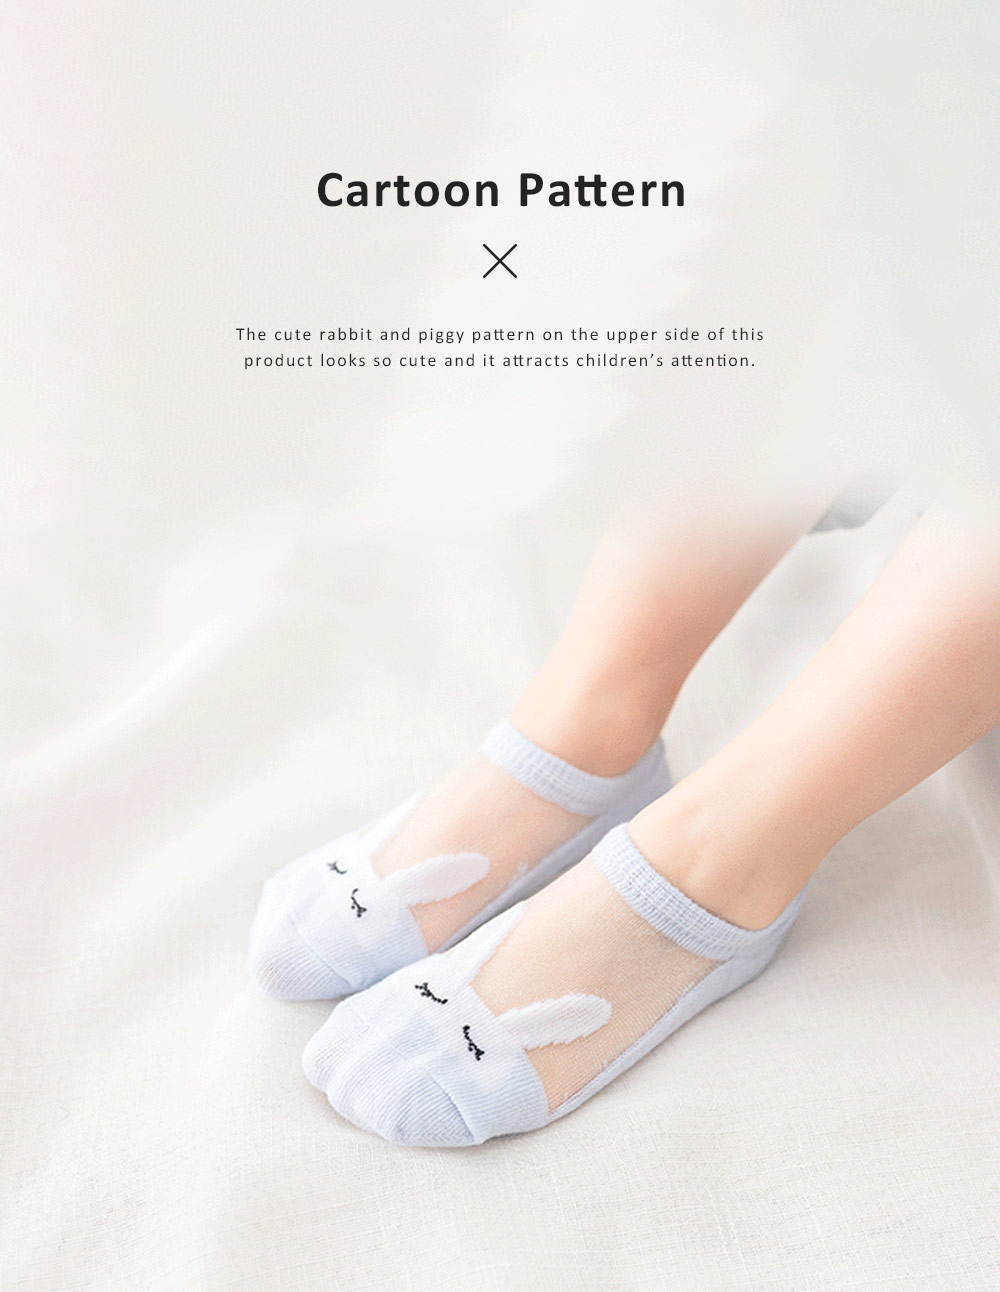 5 Pairs Latest Cotton and Glass Fibre Material Summer Ankle Socks for Children, High Quality Thin Low-cut Socks with Silicone Pad 2